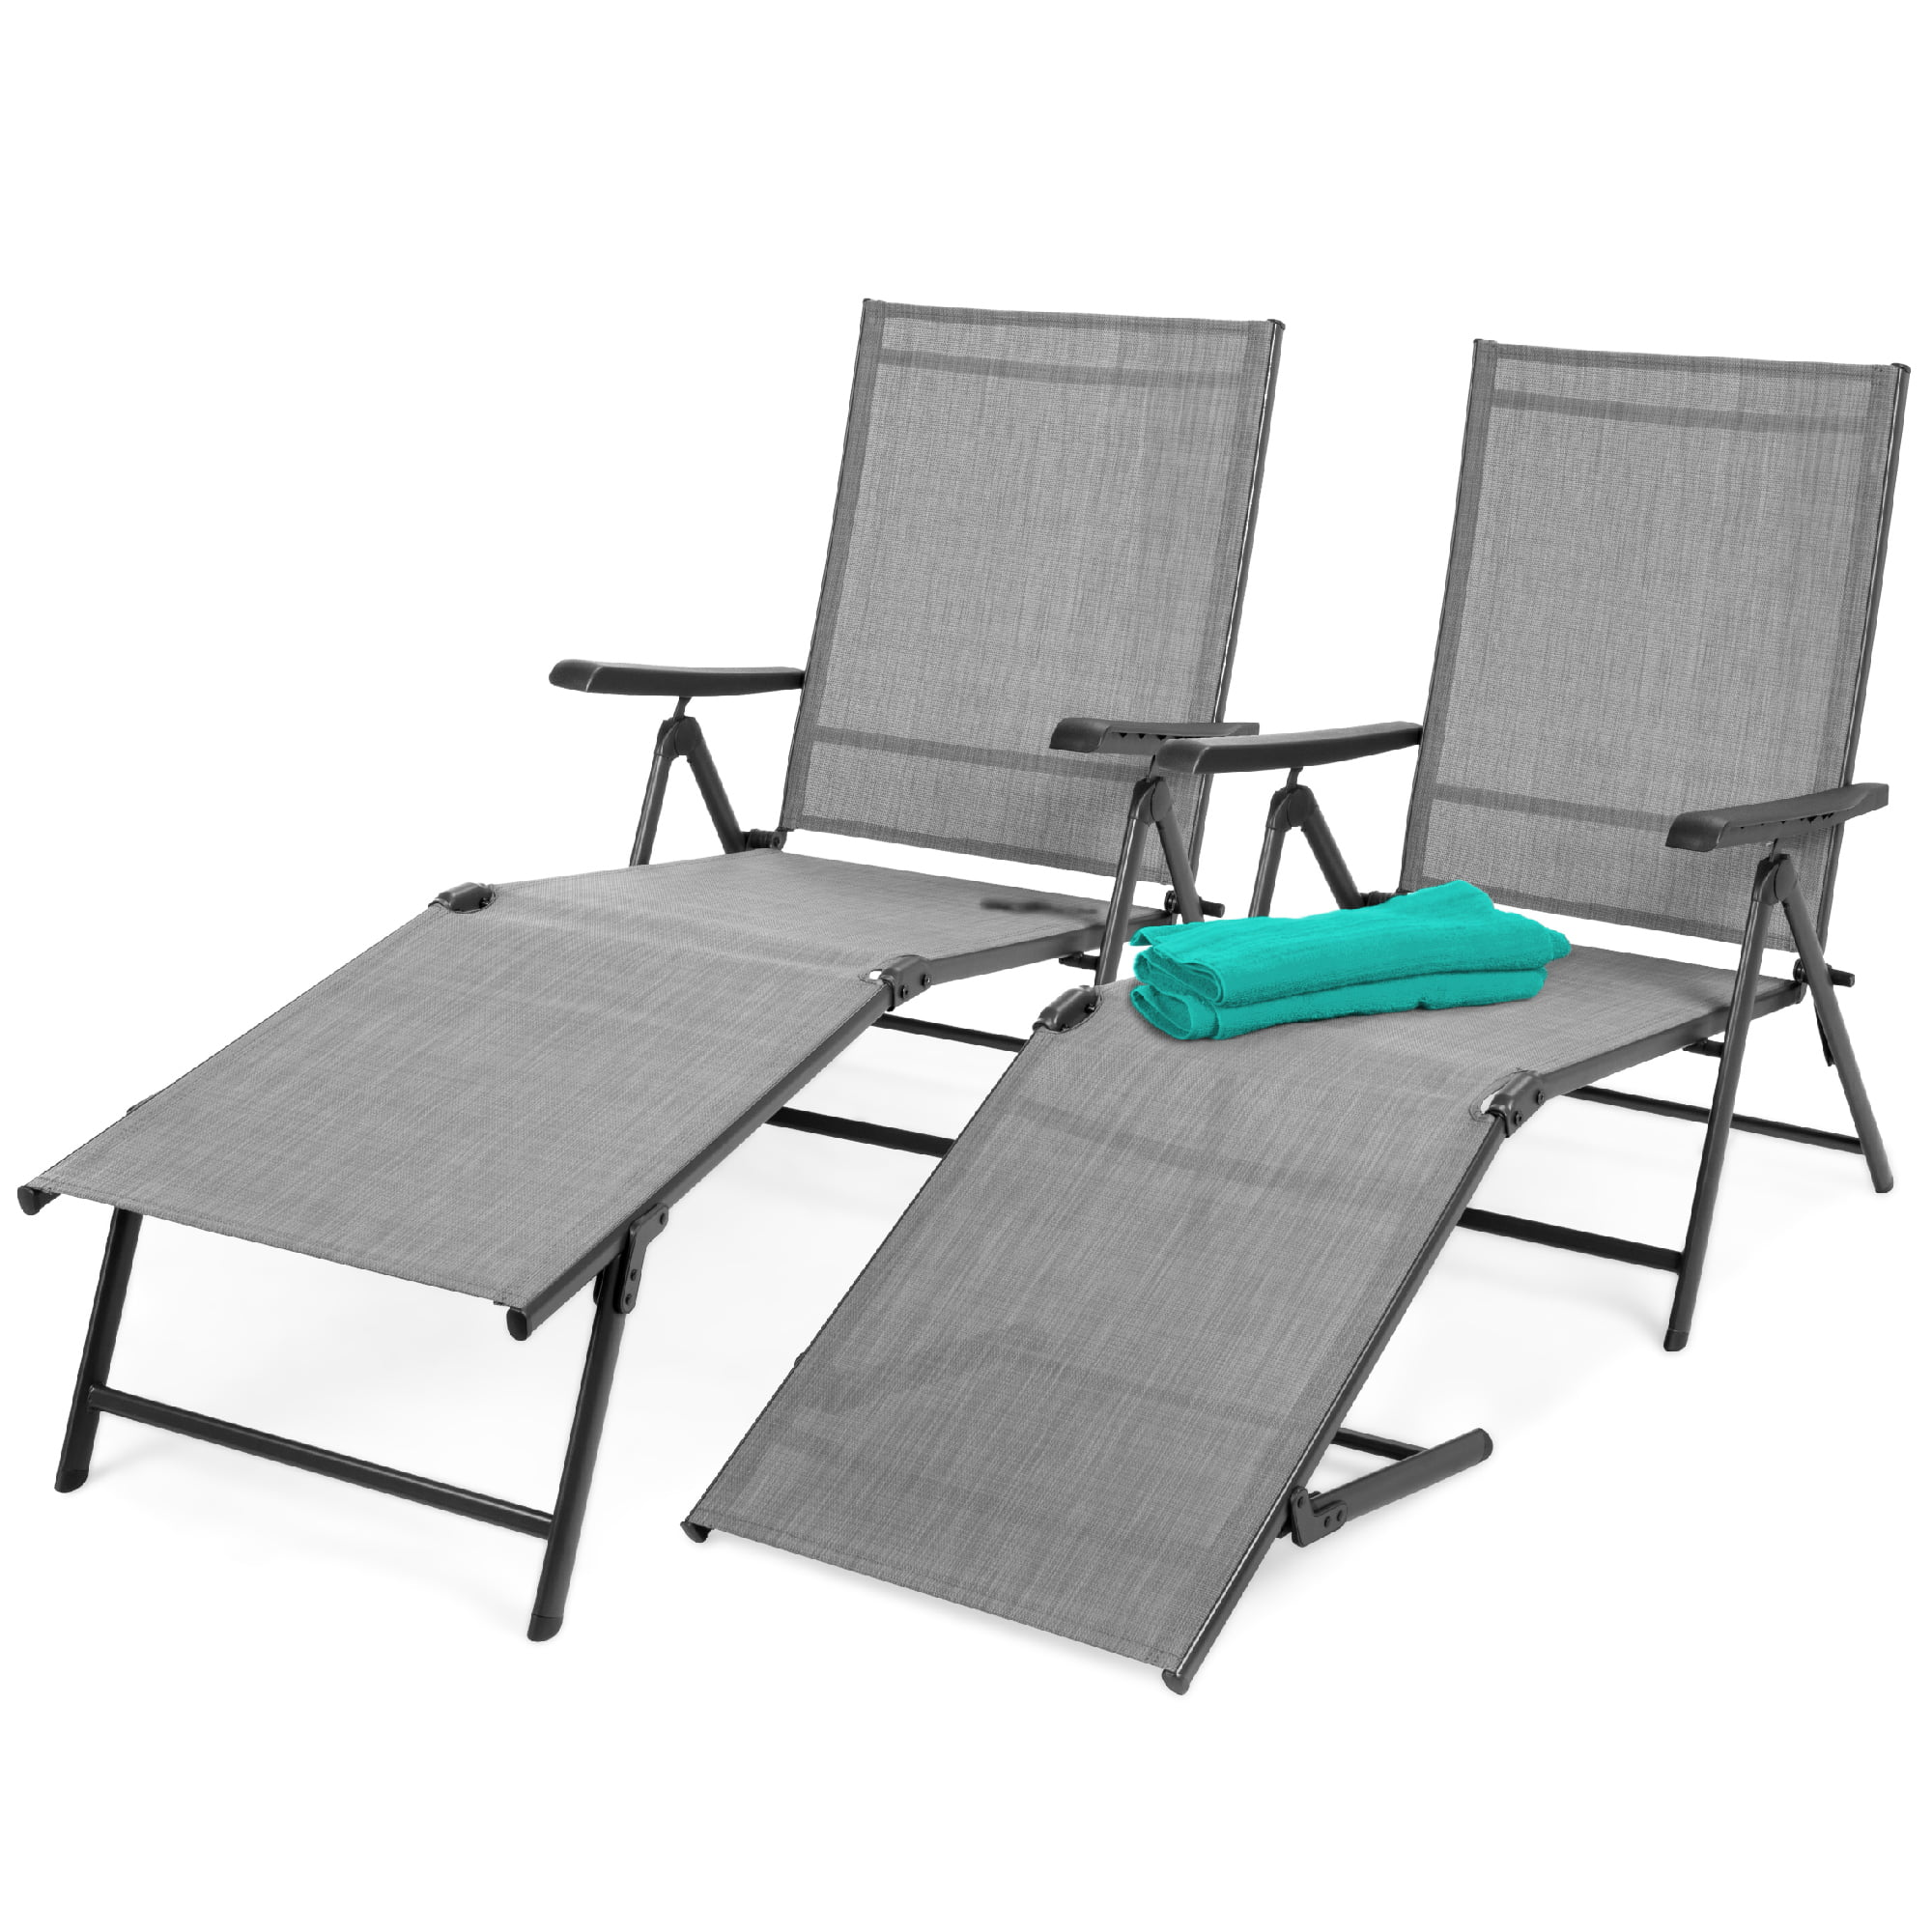 best choice products set of 2 outdoor adjustable folding chaise lounge recliner chairs for patio poolside deck gray